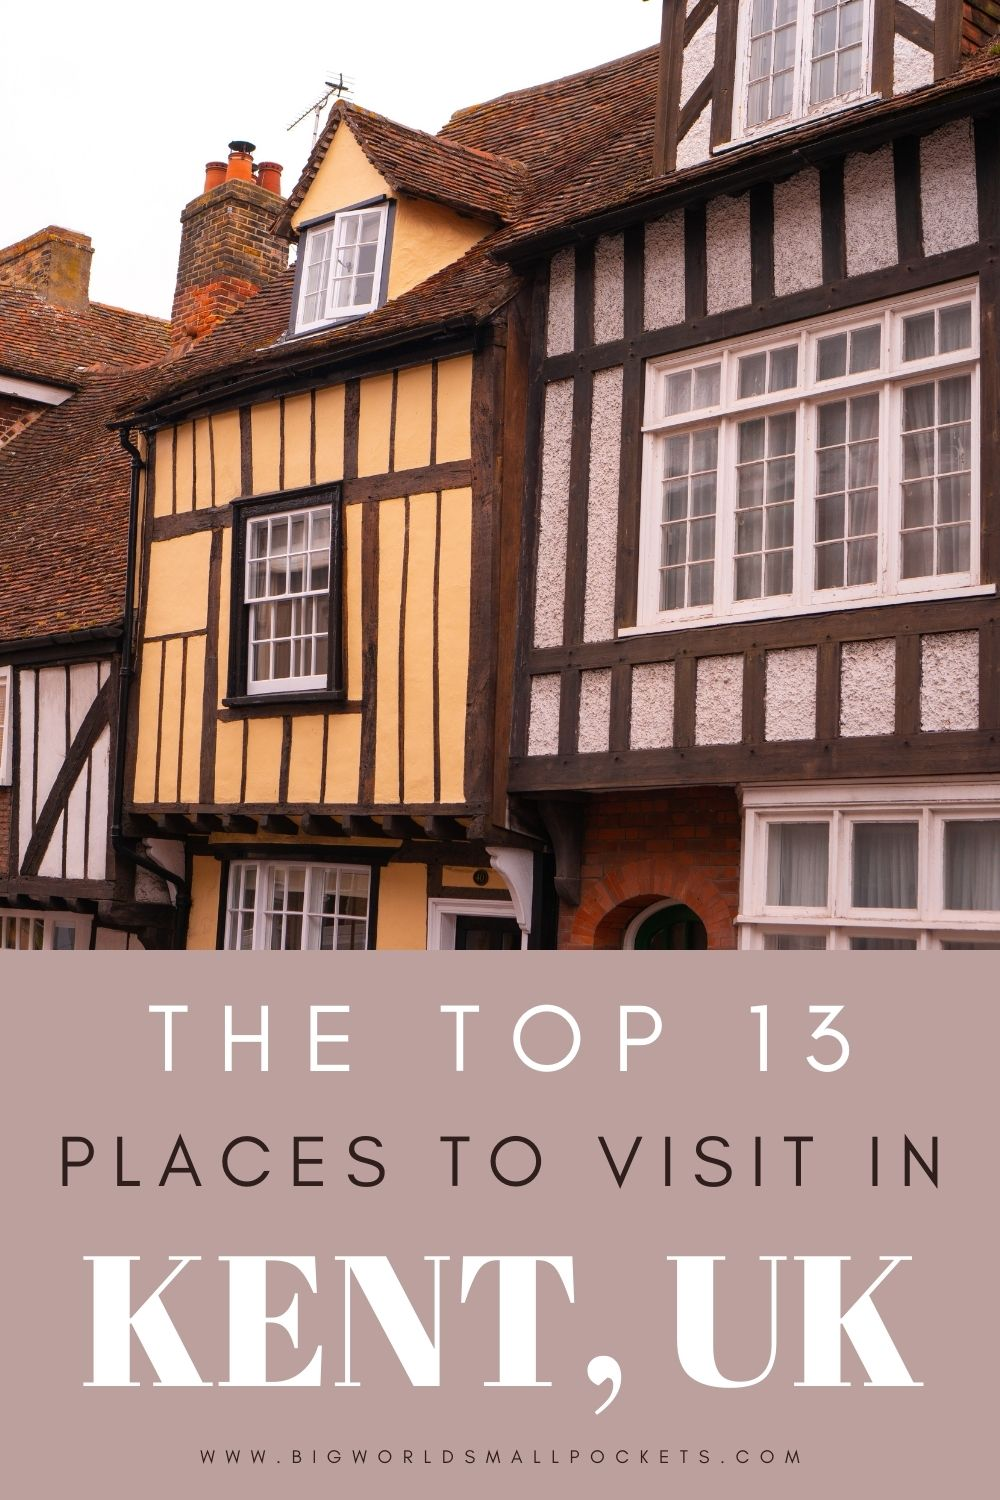 The Top 13 Places to Visit in Kent, England